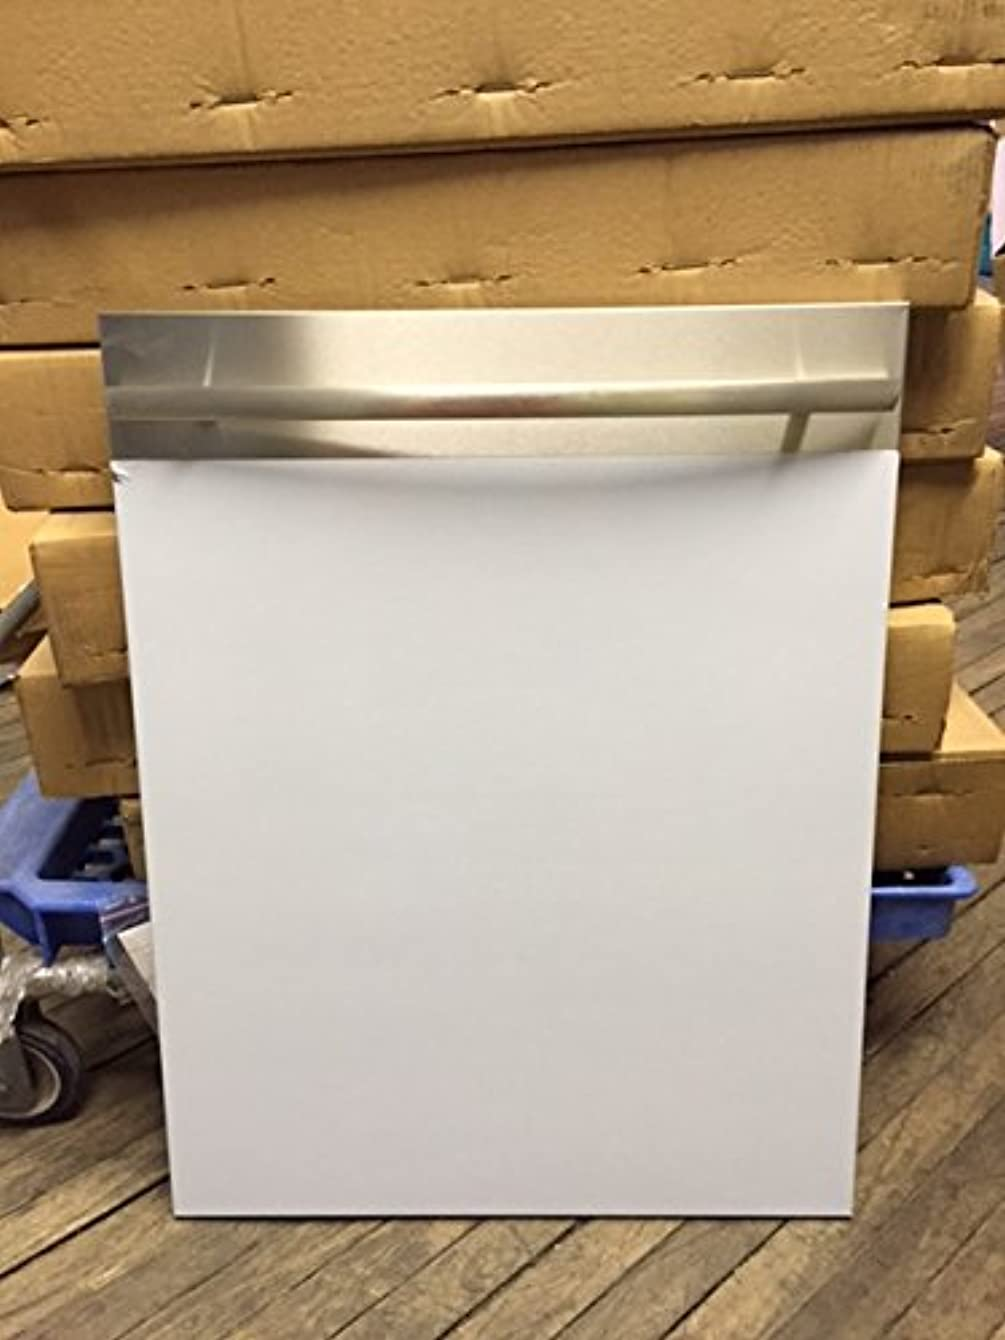 Asko 8075367-91 Stainless steel Door for Dishwasher- Curved Handle